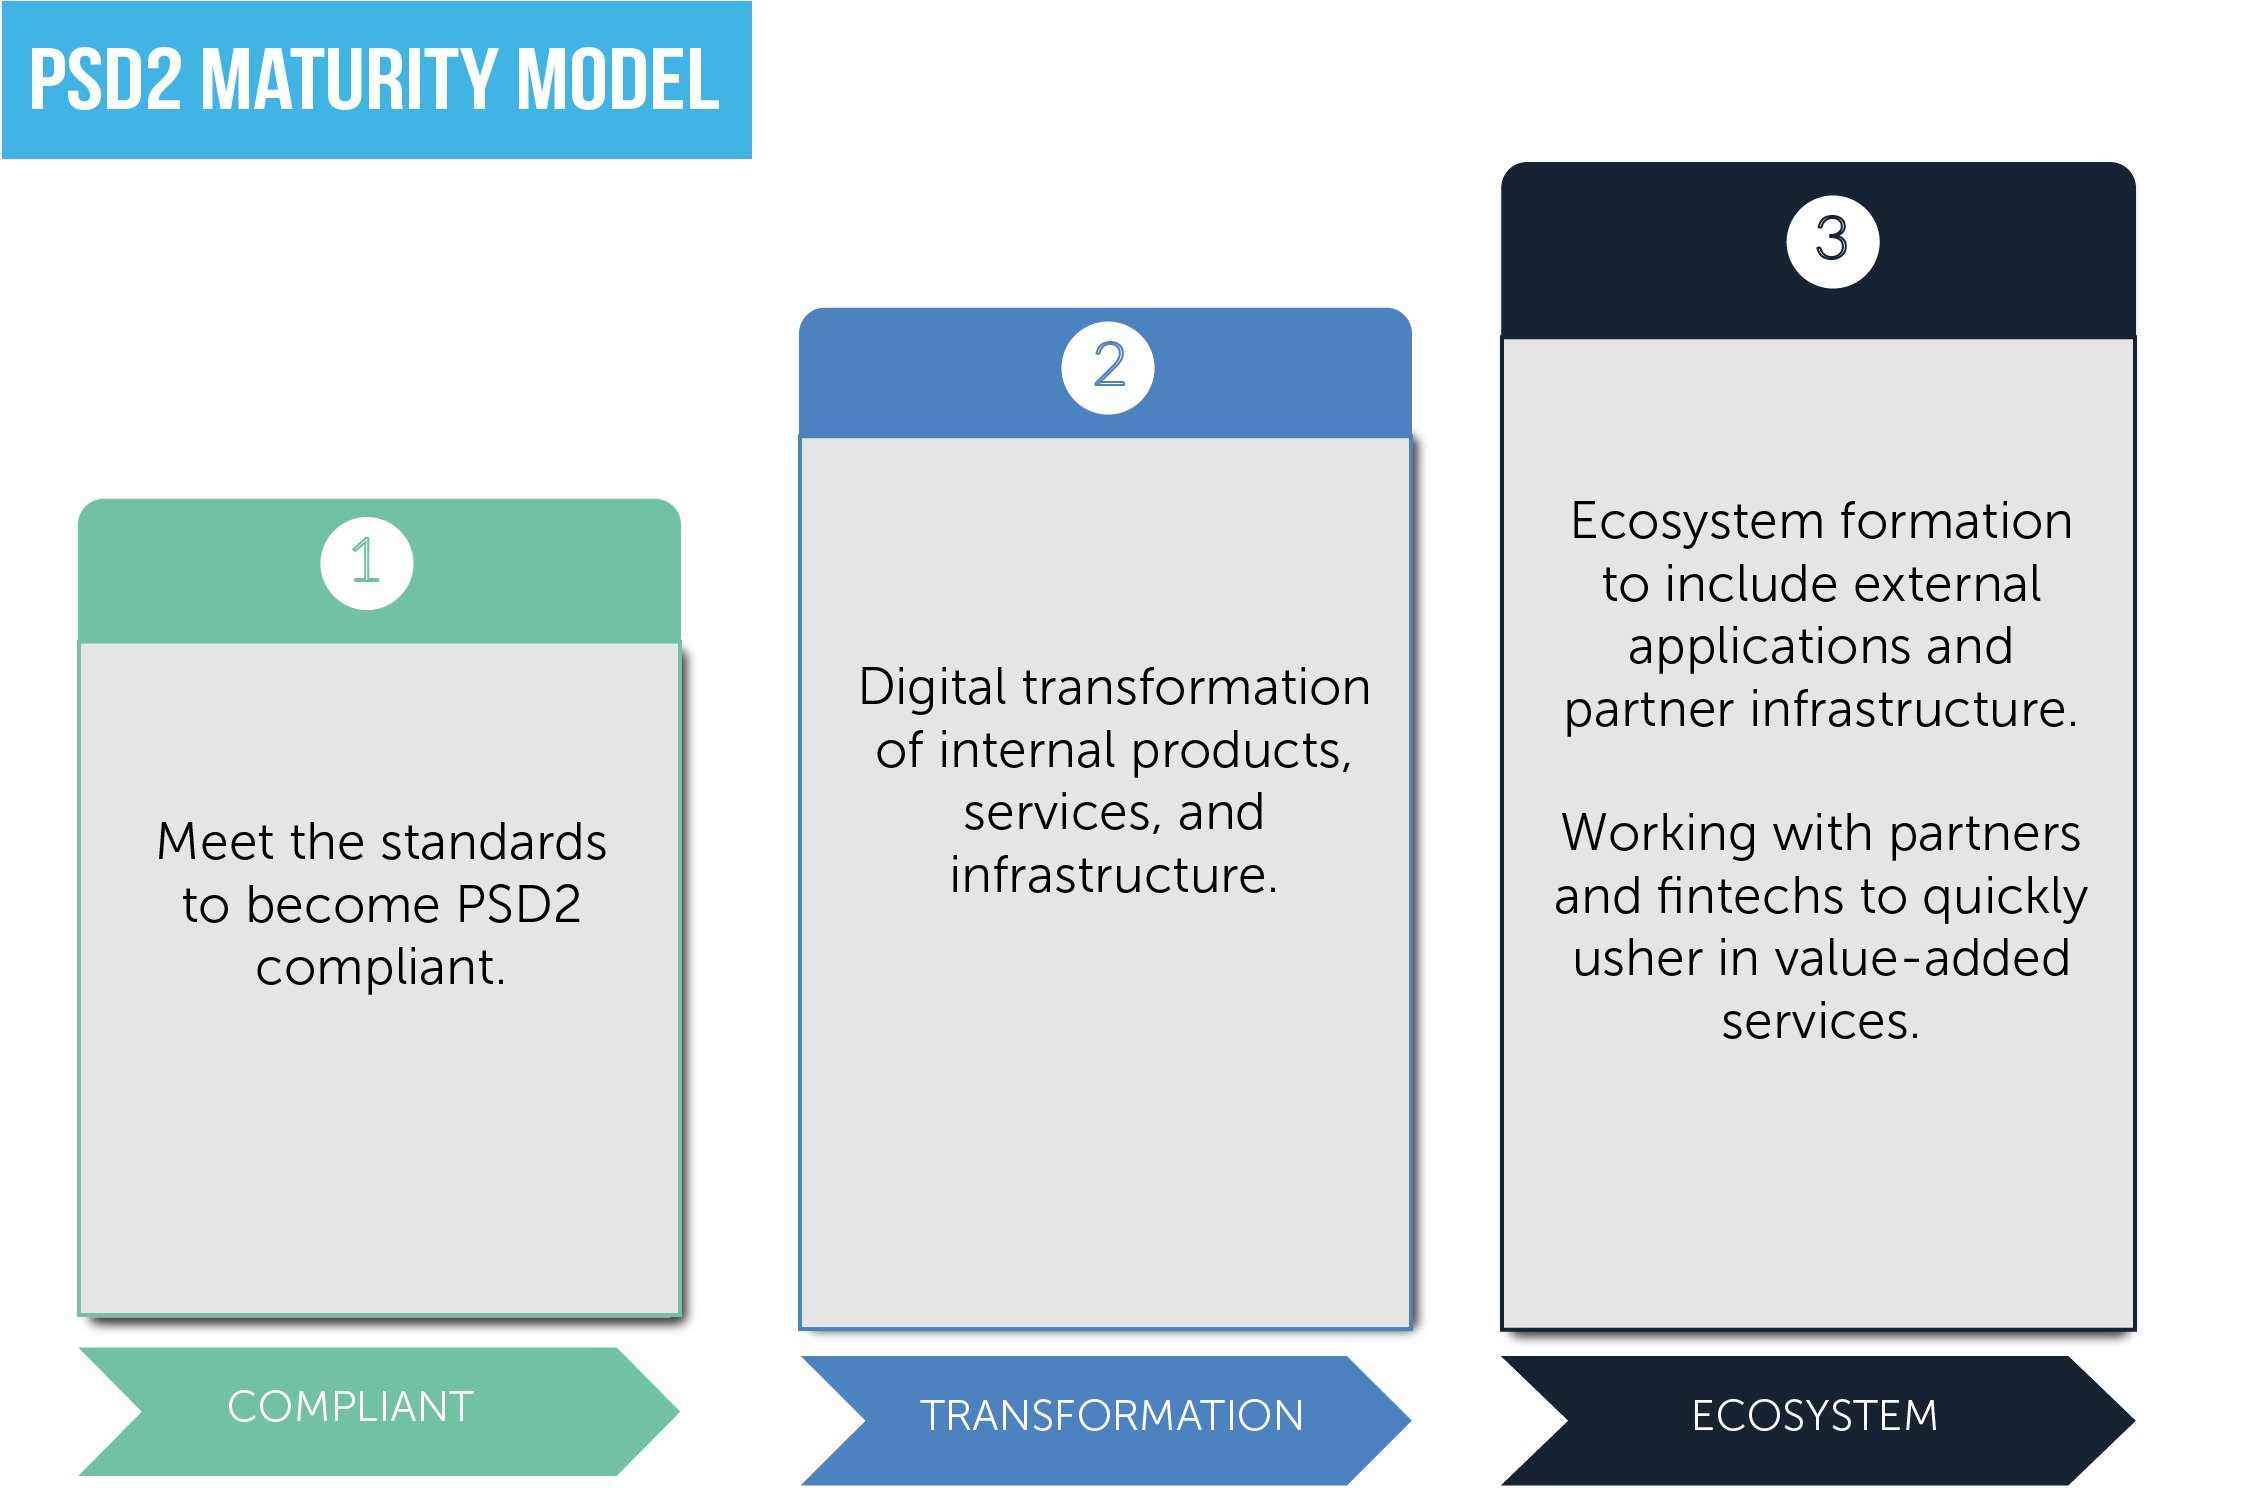 PSD2-Maturity Model-01.png